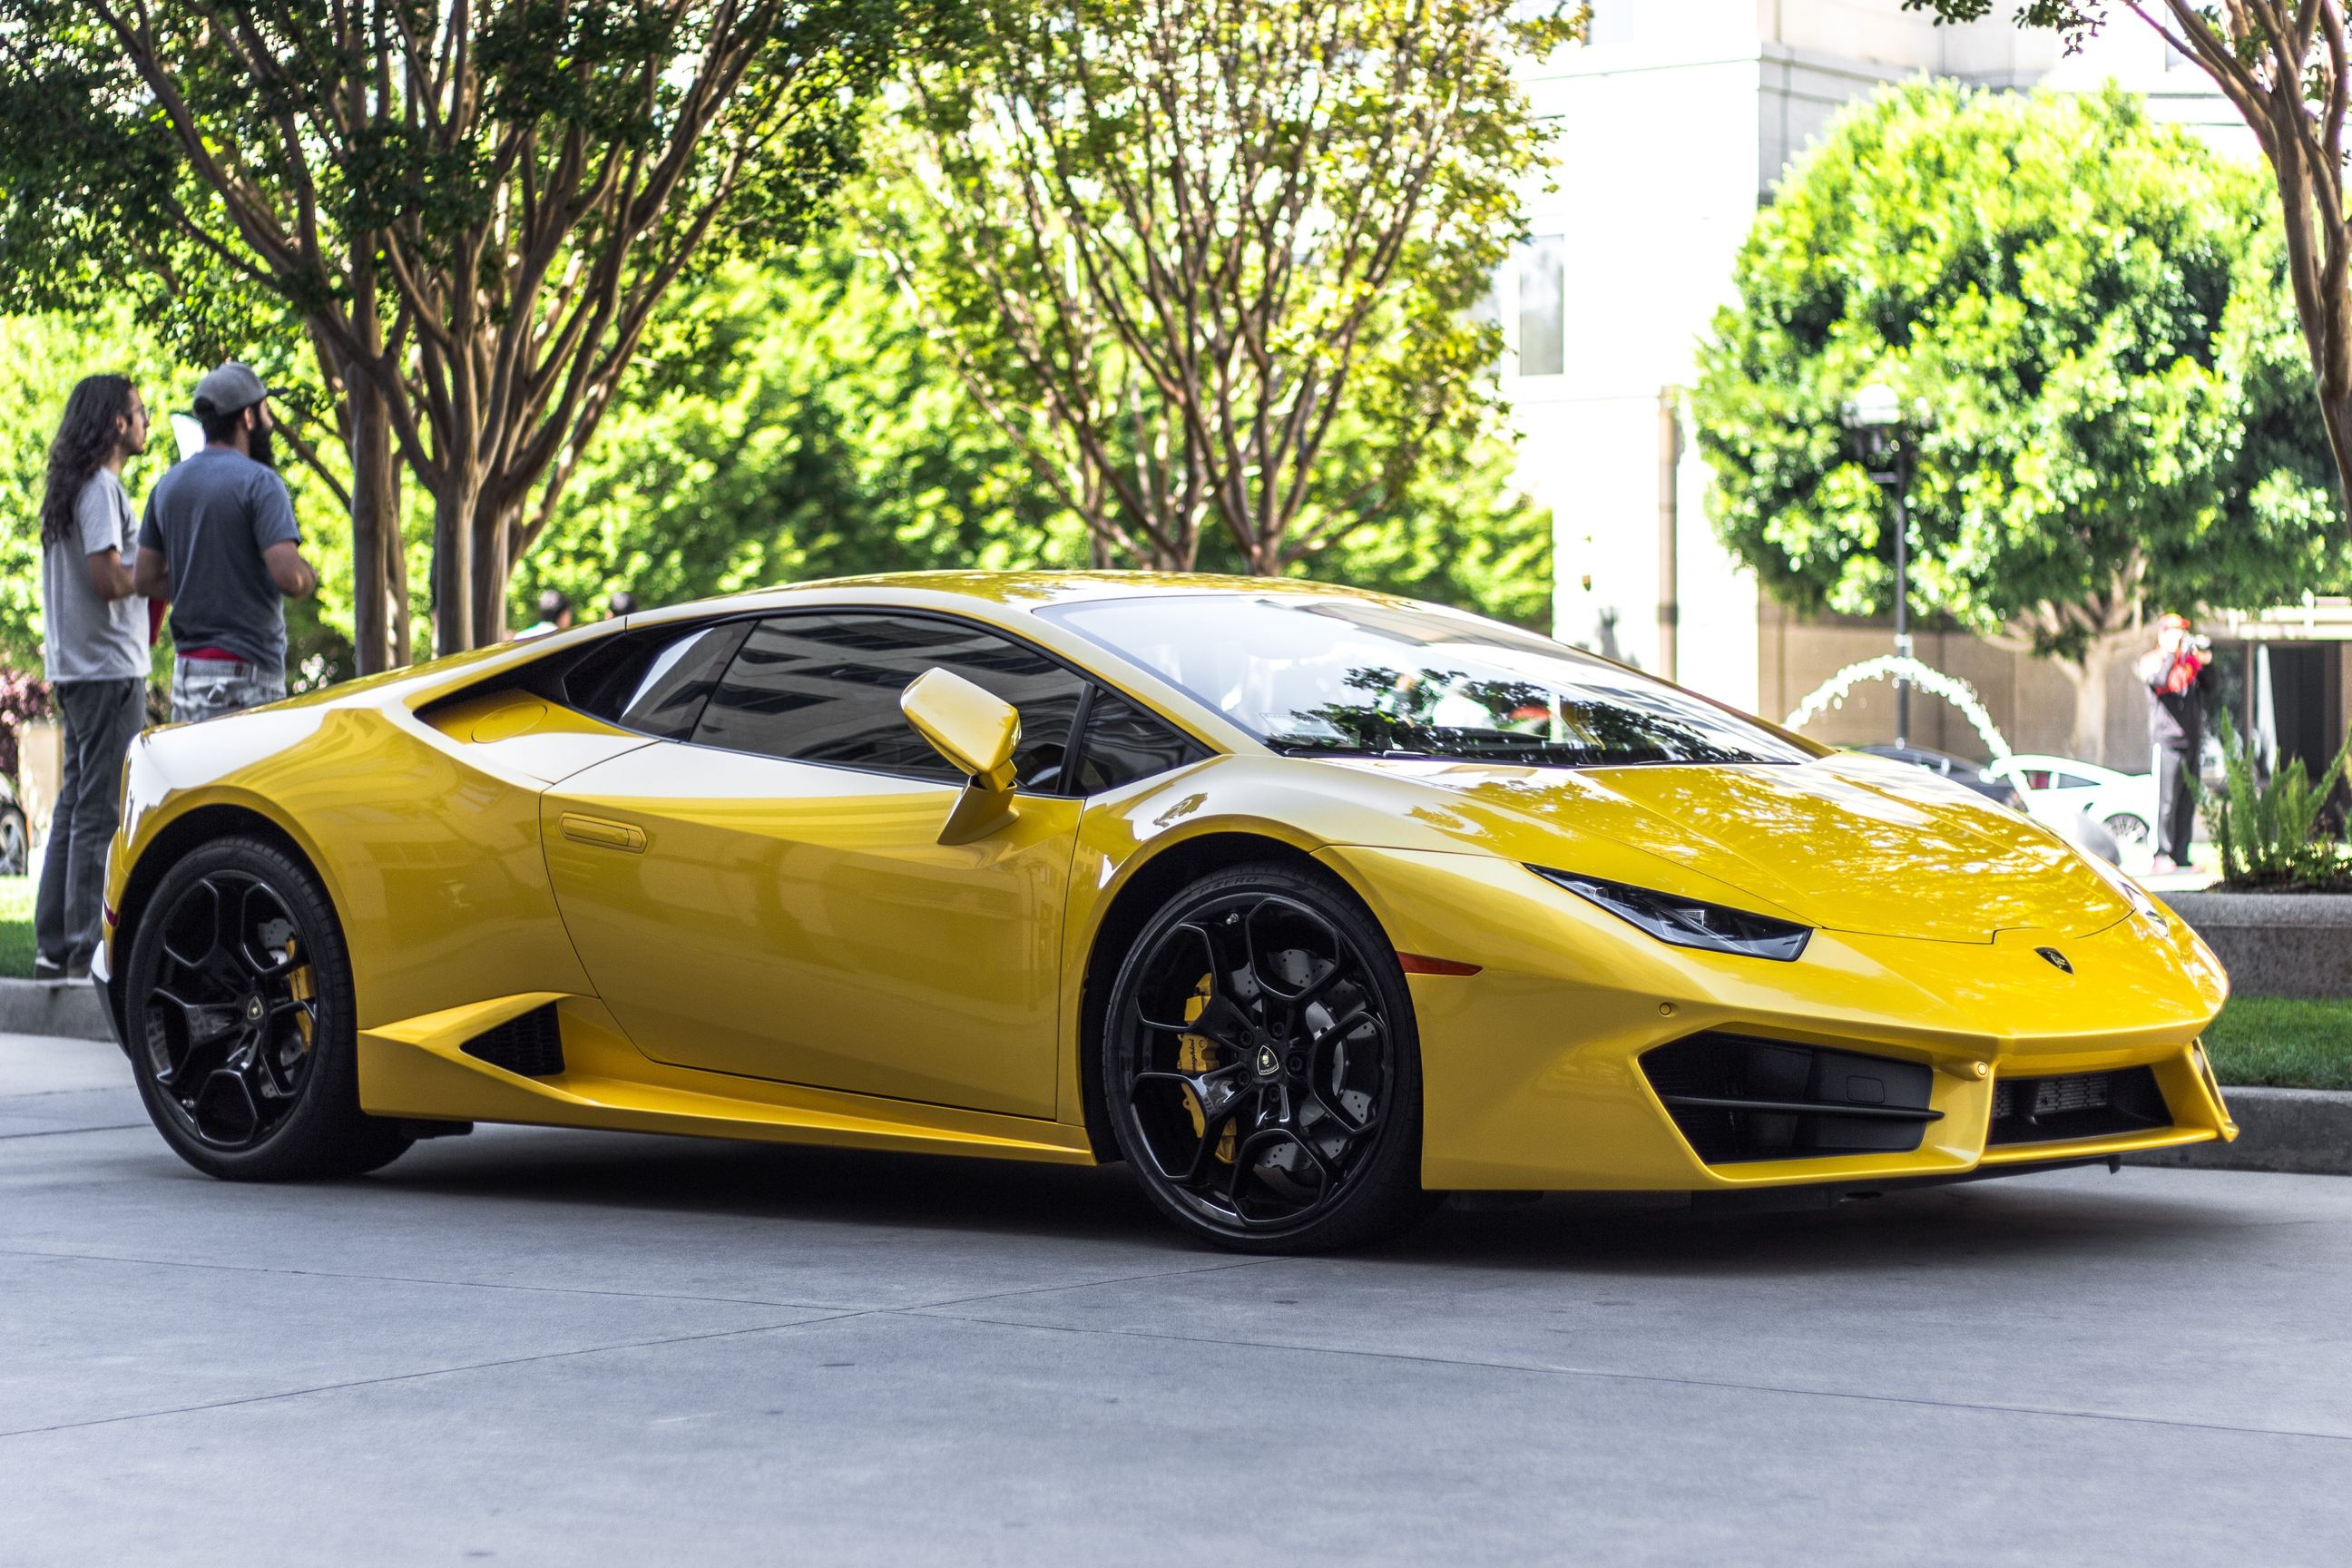 Yellow Ferrari Photo by Dexter Flexter on Unsplash